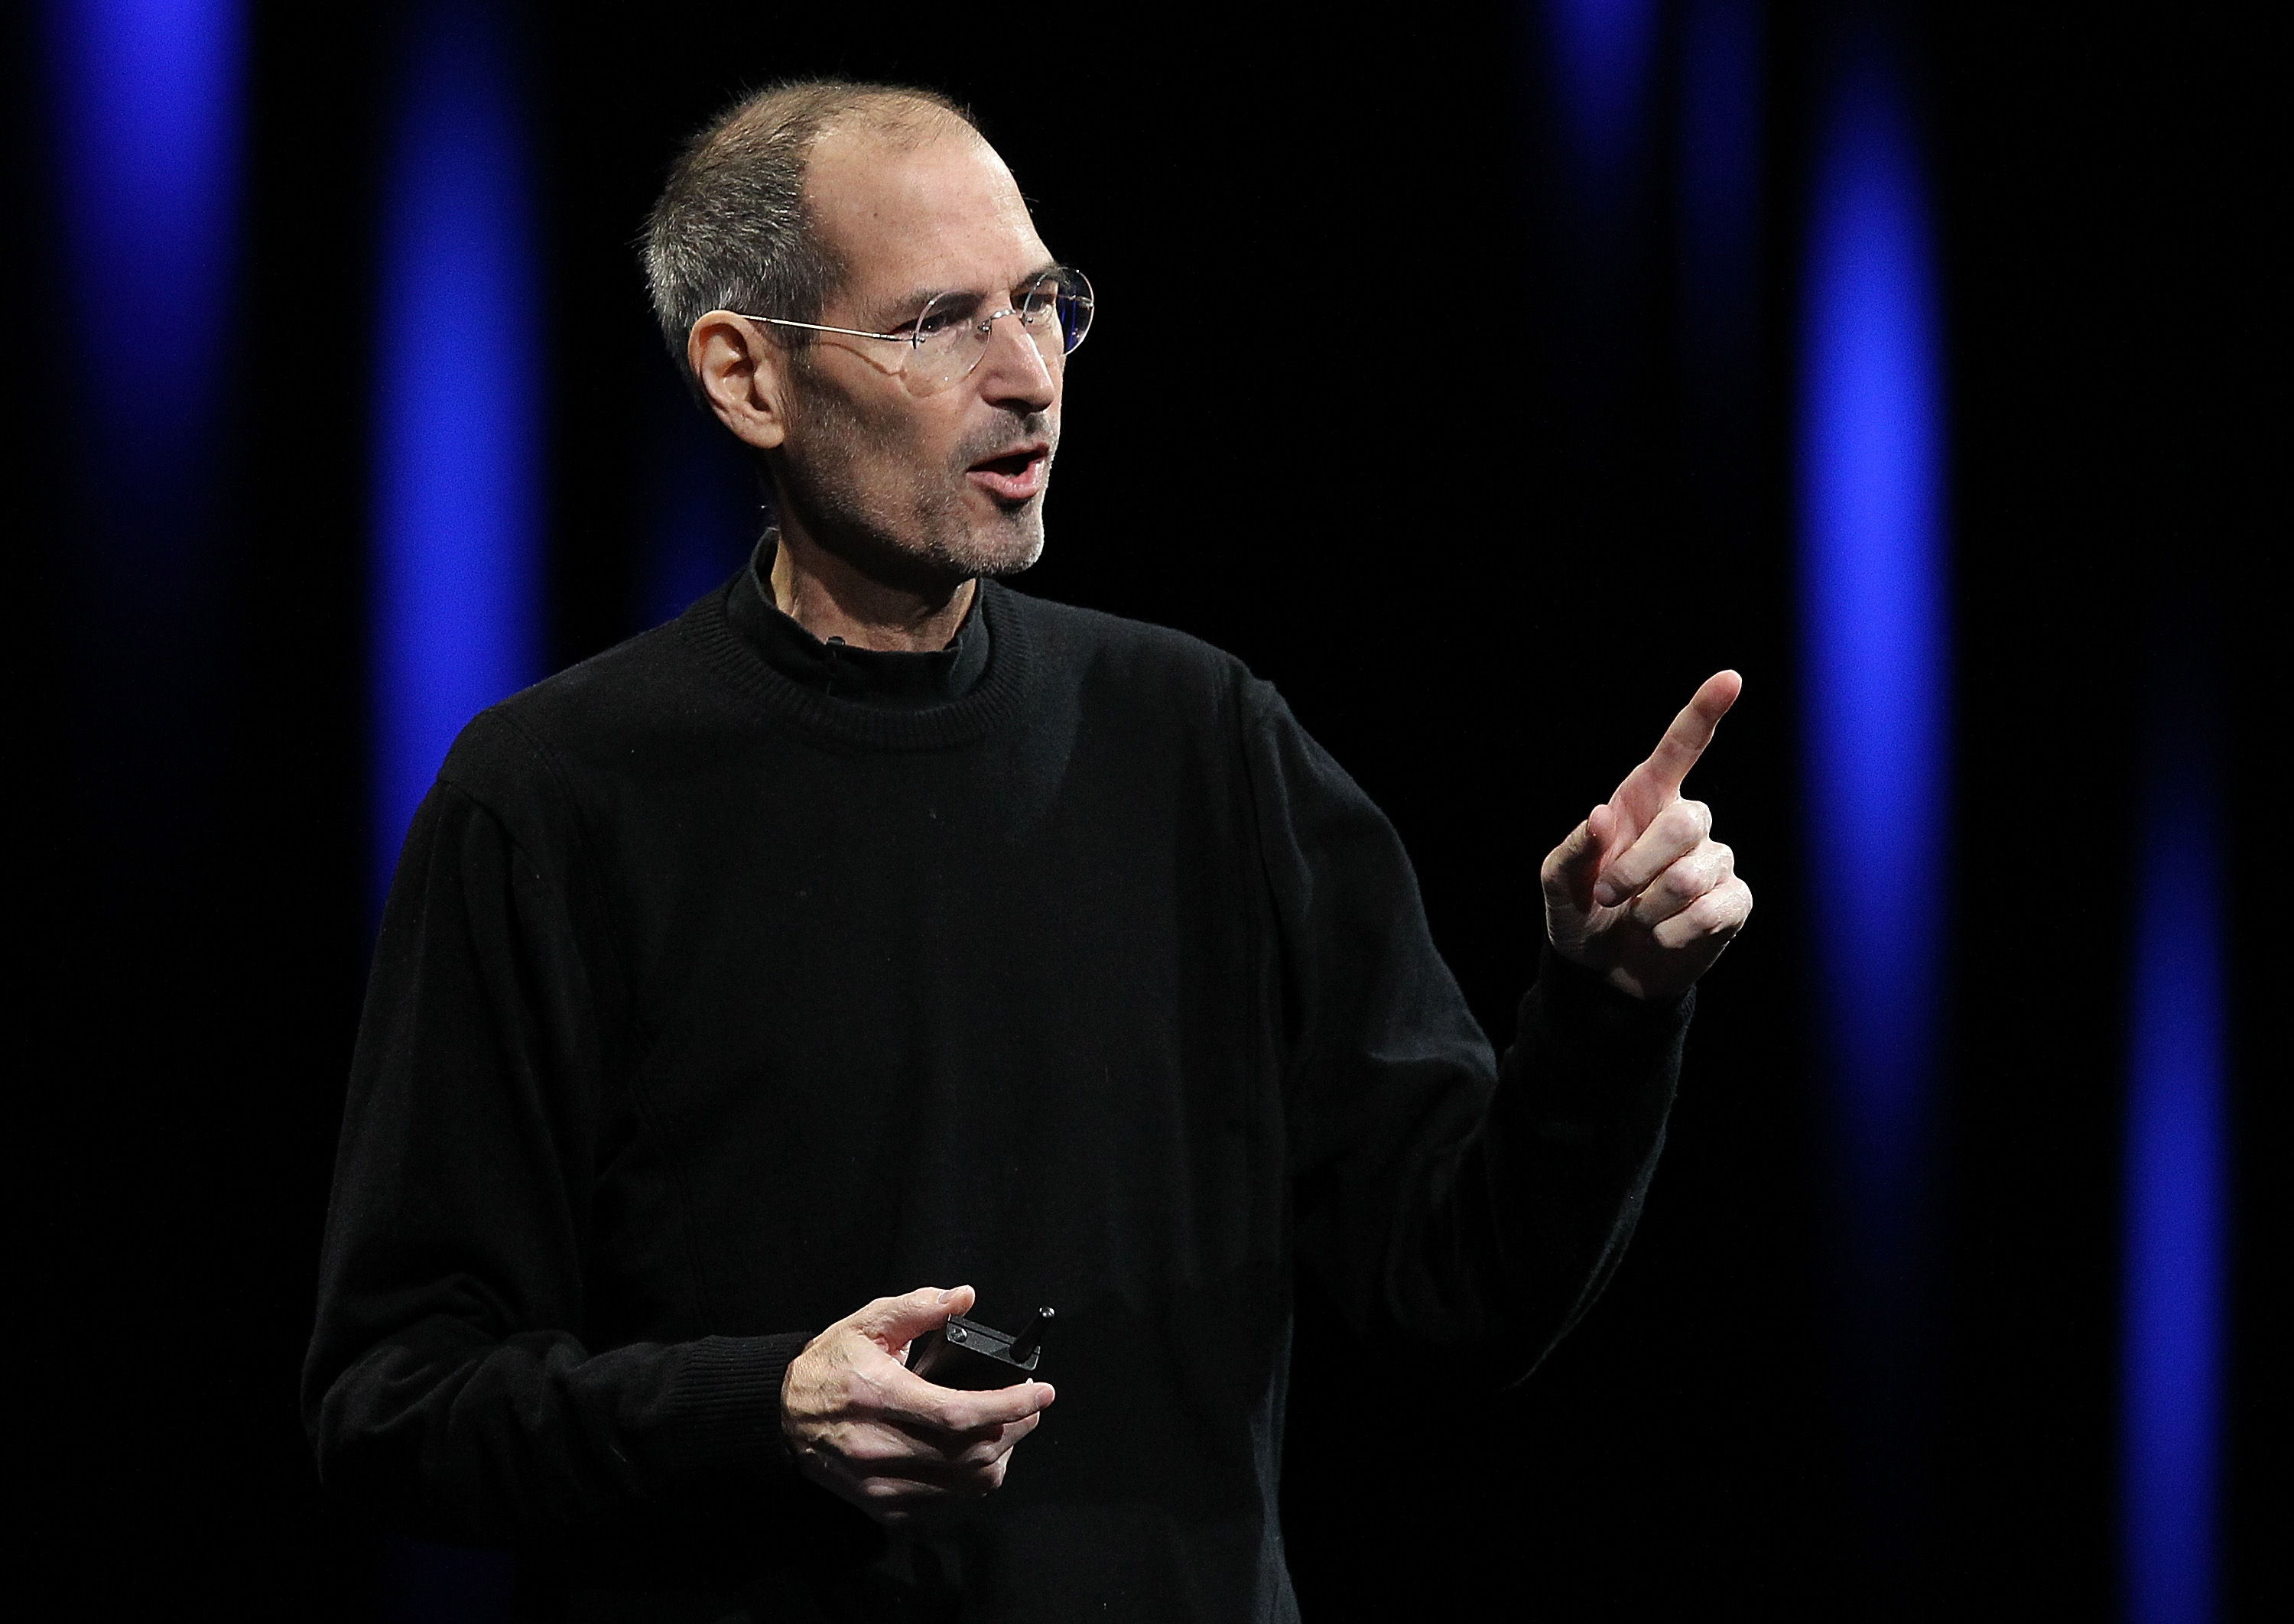 Timeline: Steve Jobs' career